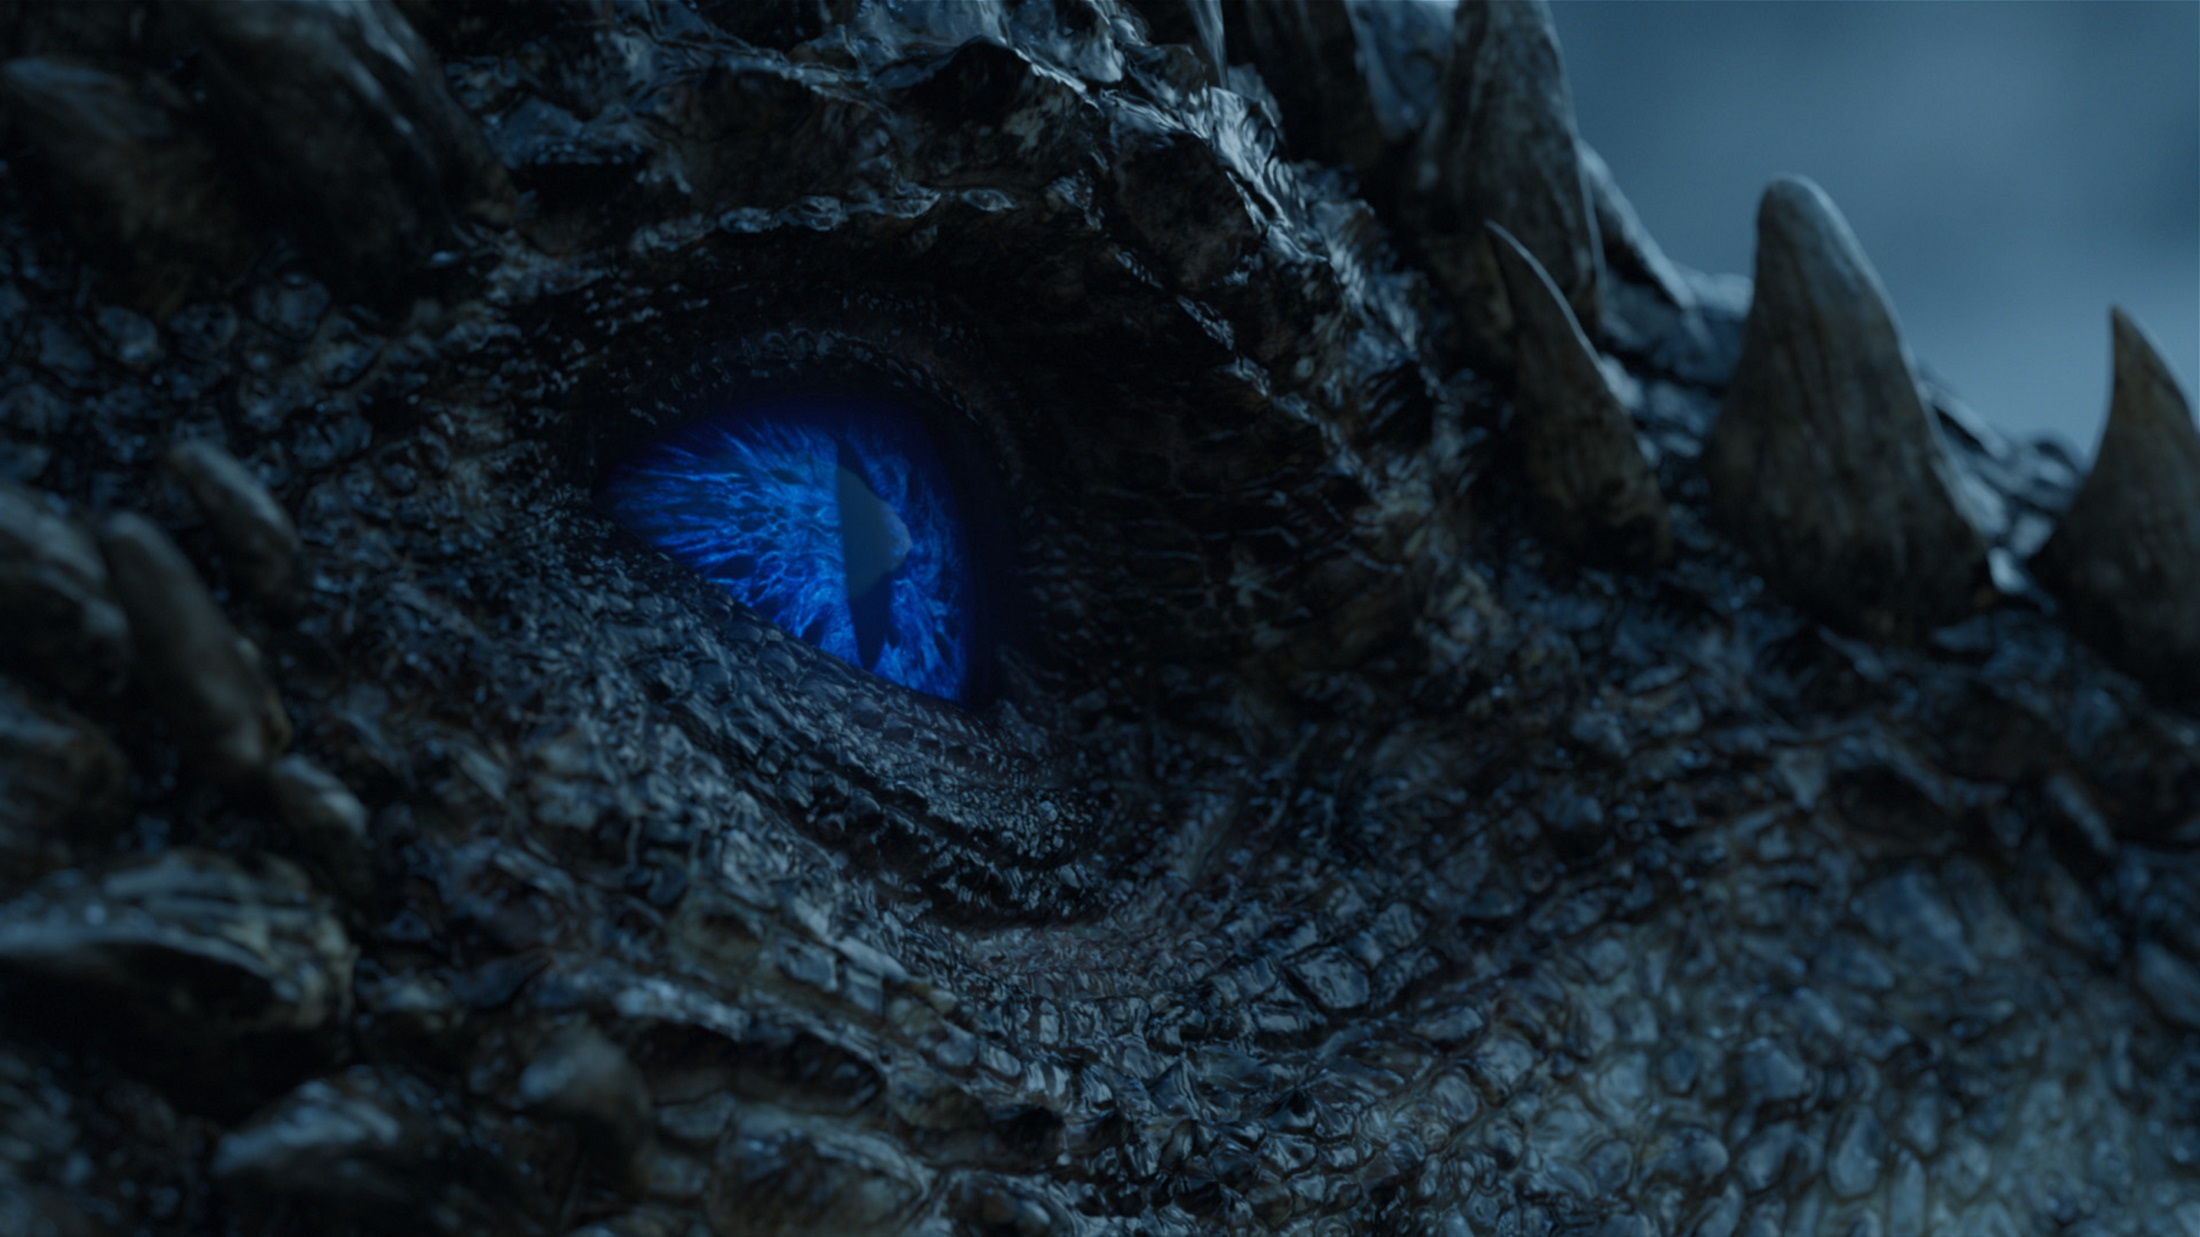 Viserion eye Beyond the Wall